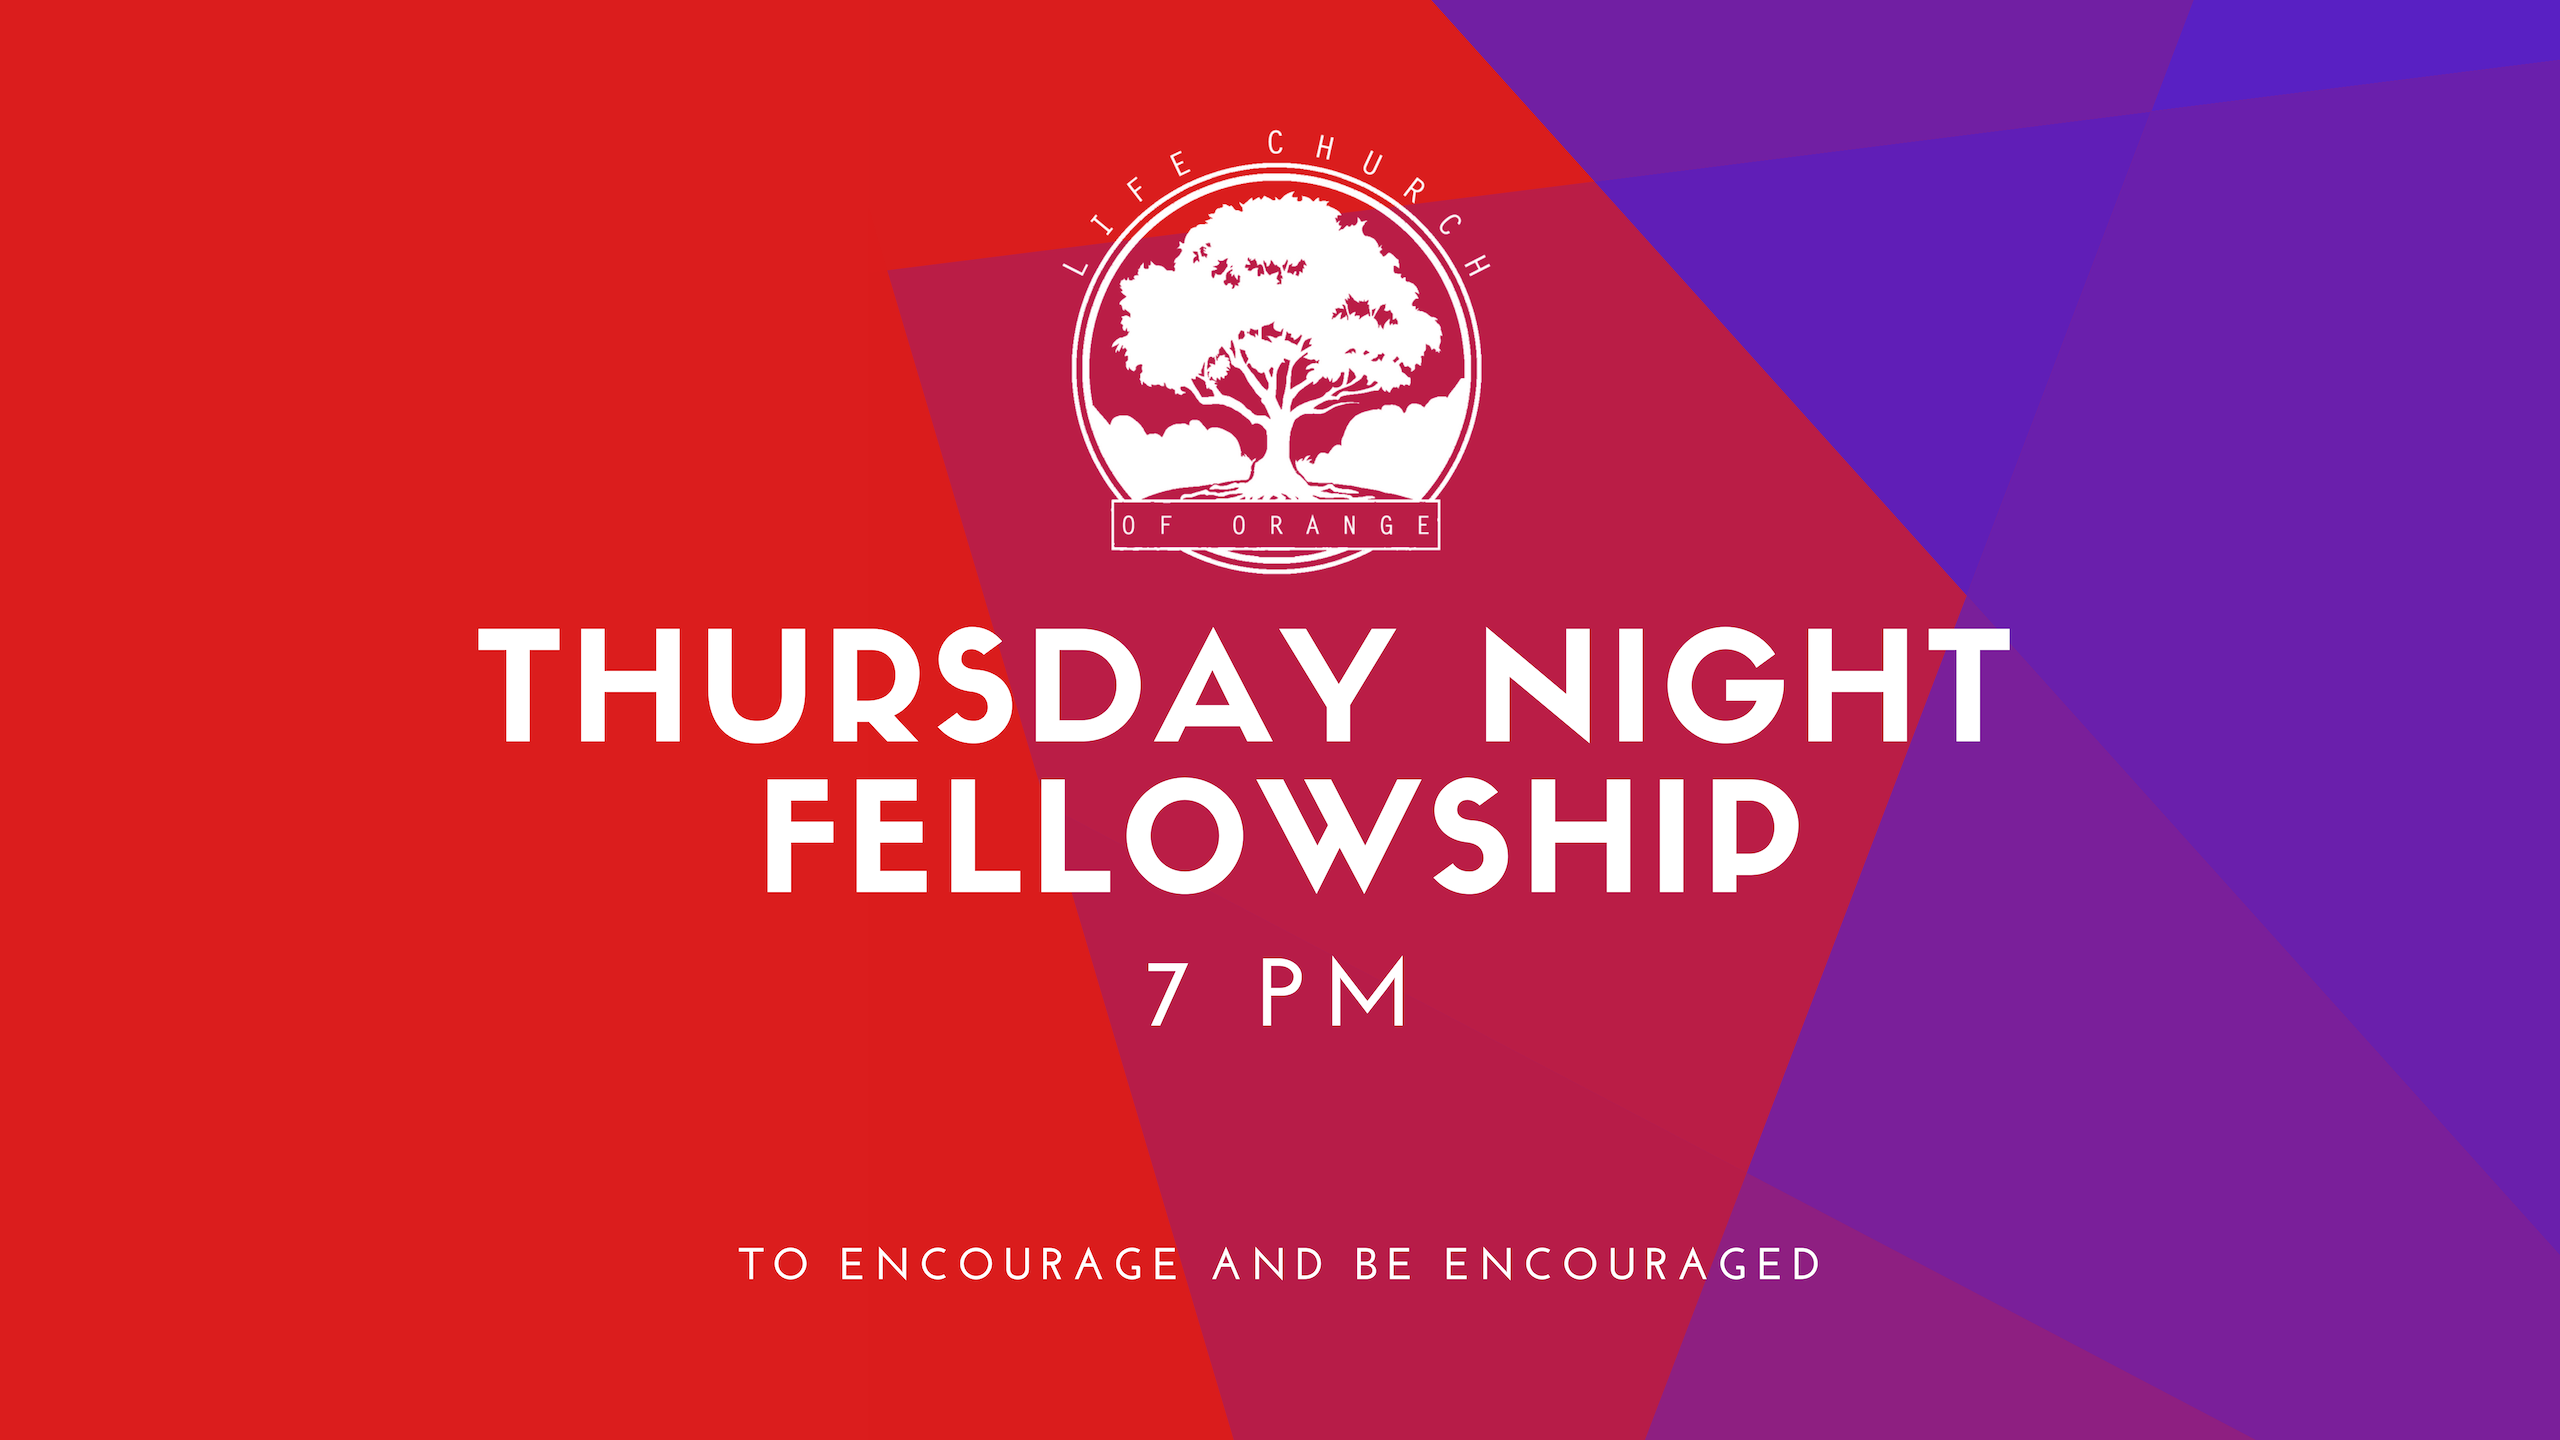 We invite you to join us Thursdays at 7PM for fellowship, food and study in God's Word.